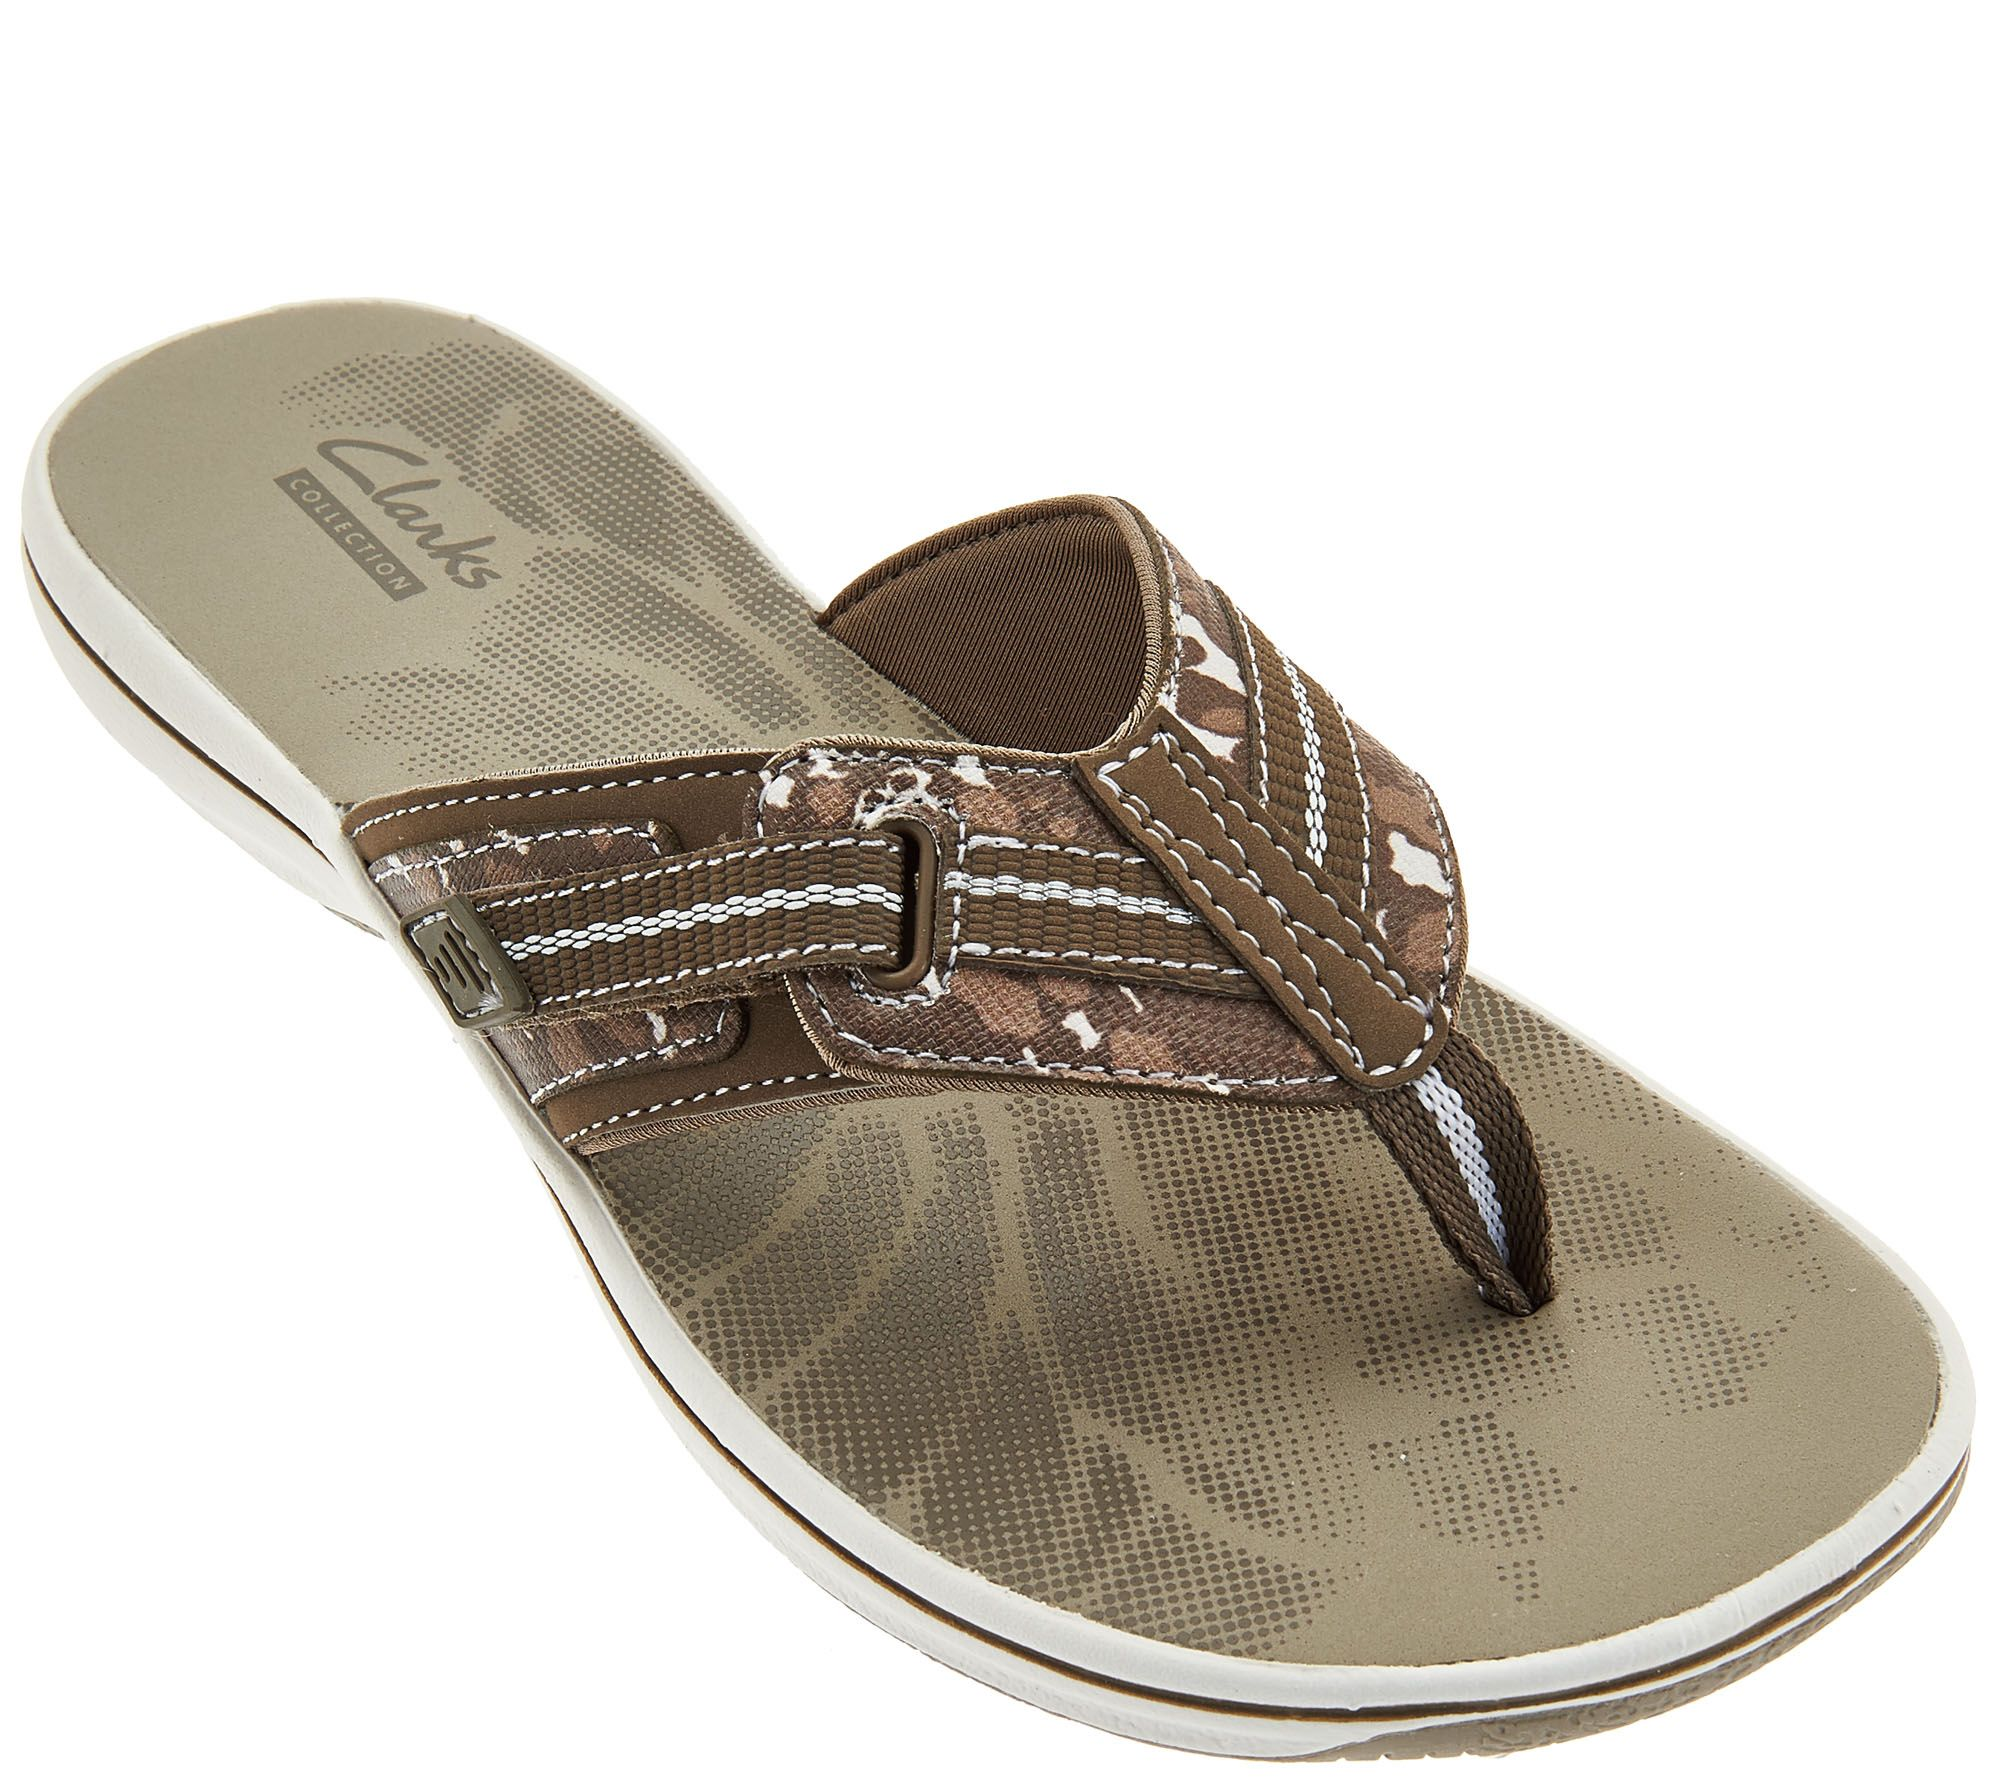 Clarks Sport Thong Sandals with Adj. Strap - Brinkley Jazz - Page 1 —  QVC.com